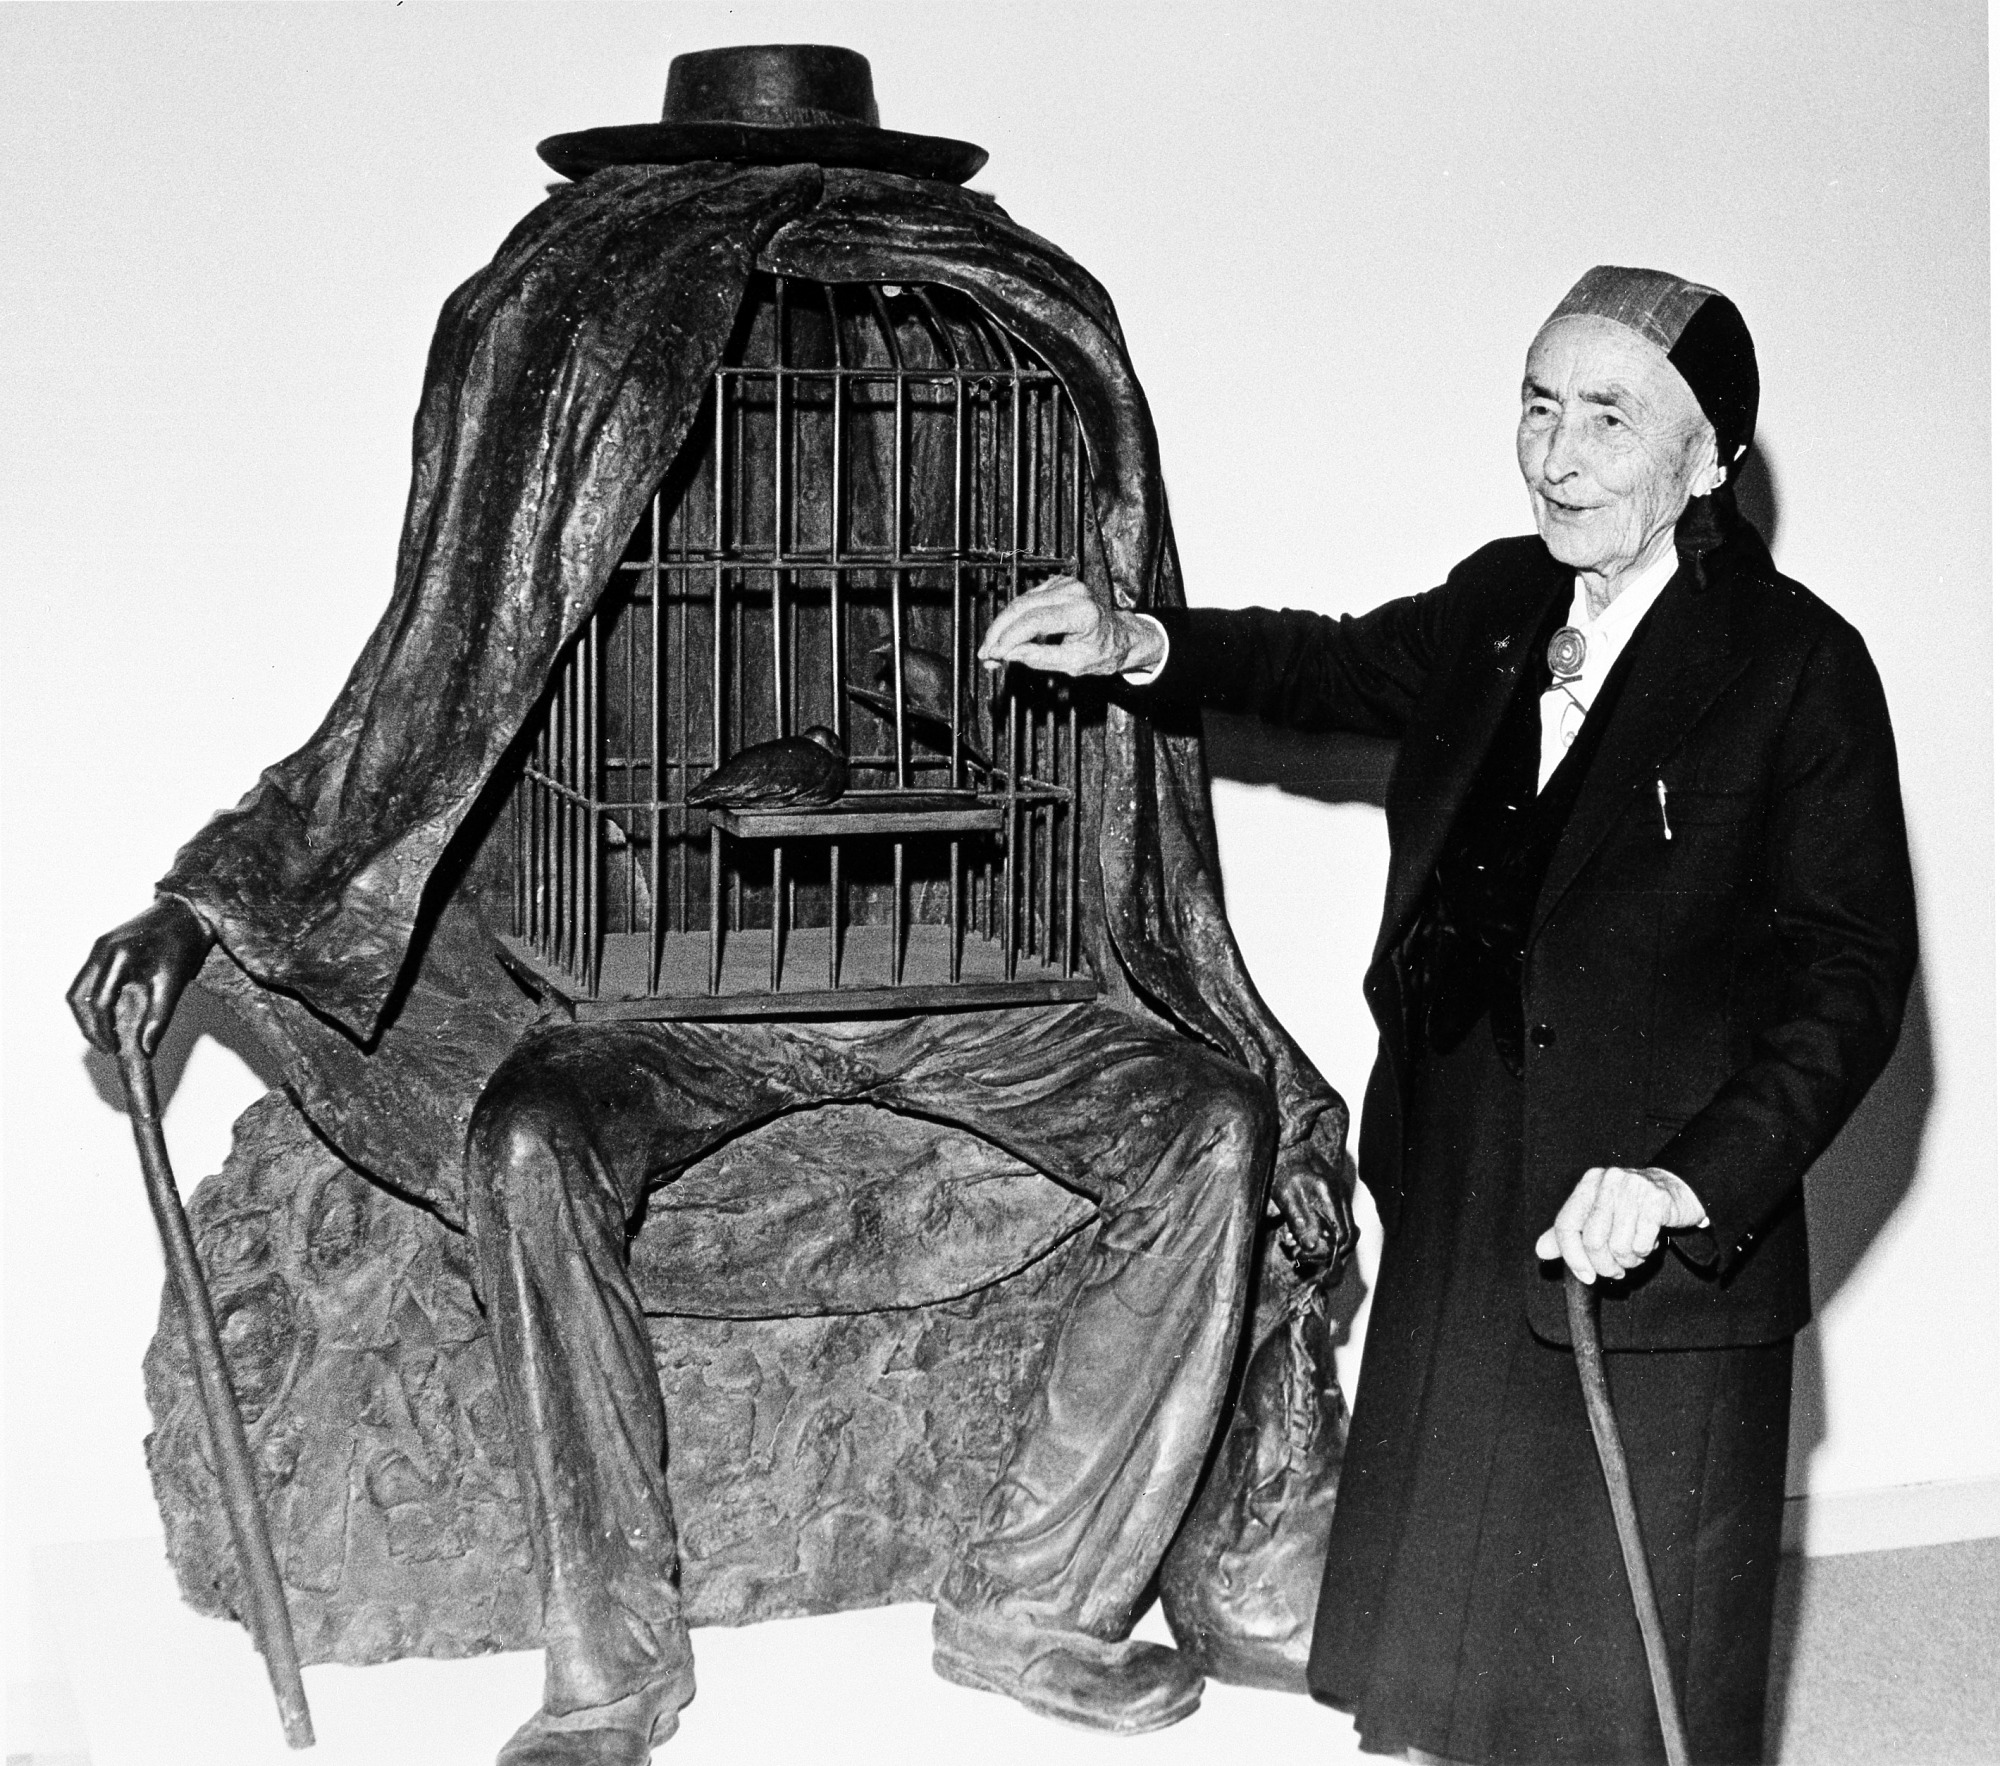 Georgia O'Keeffe with Magritte Sculpture